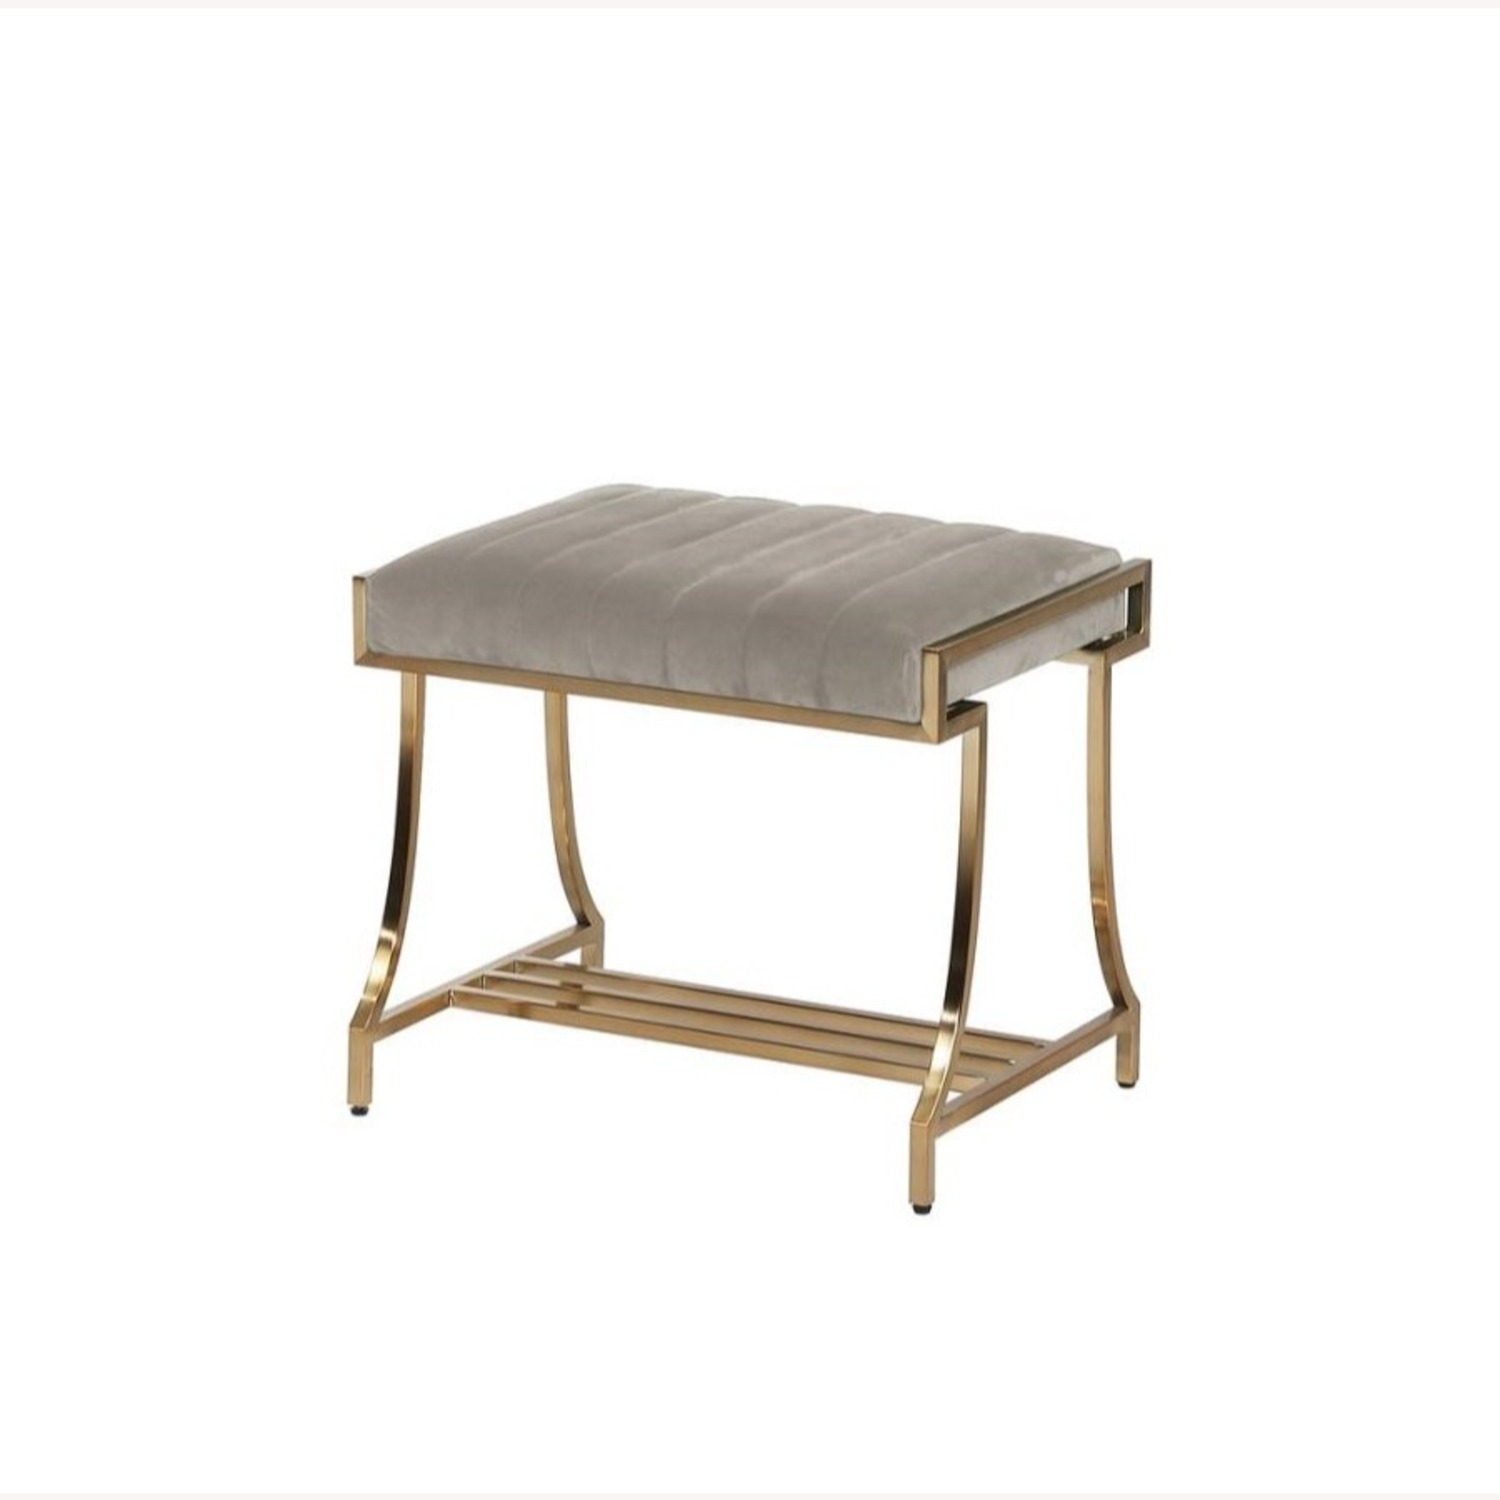 Elegant Vanity Stool In Taupe Color Fabric - image-1